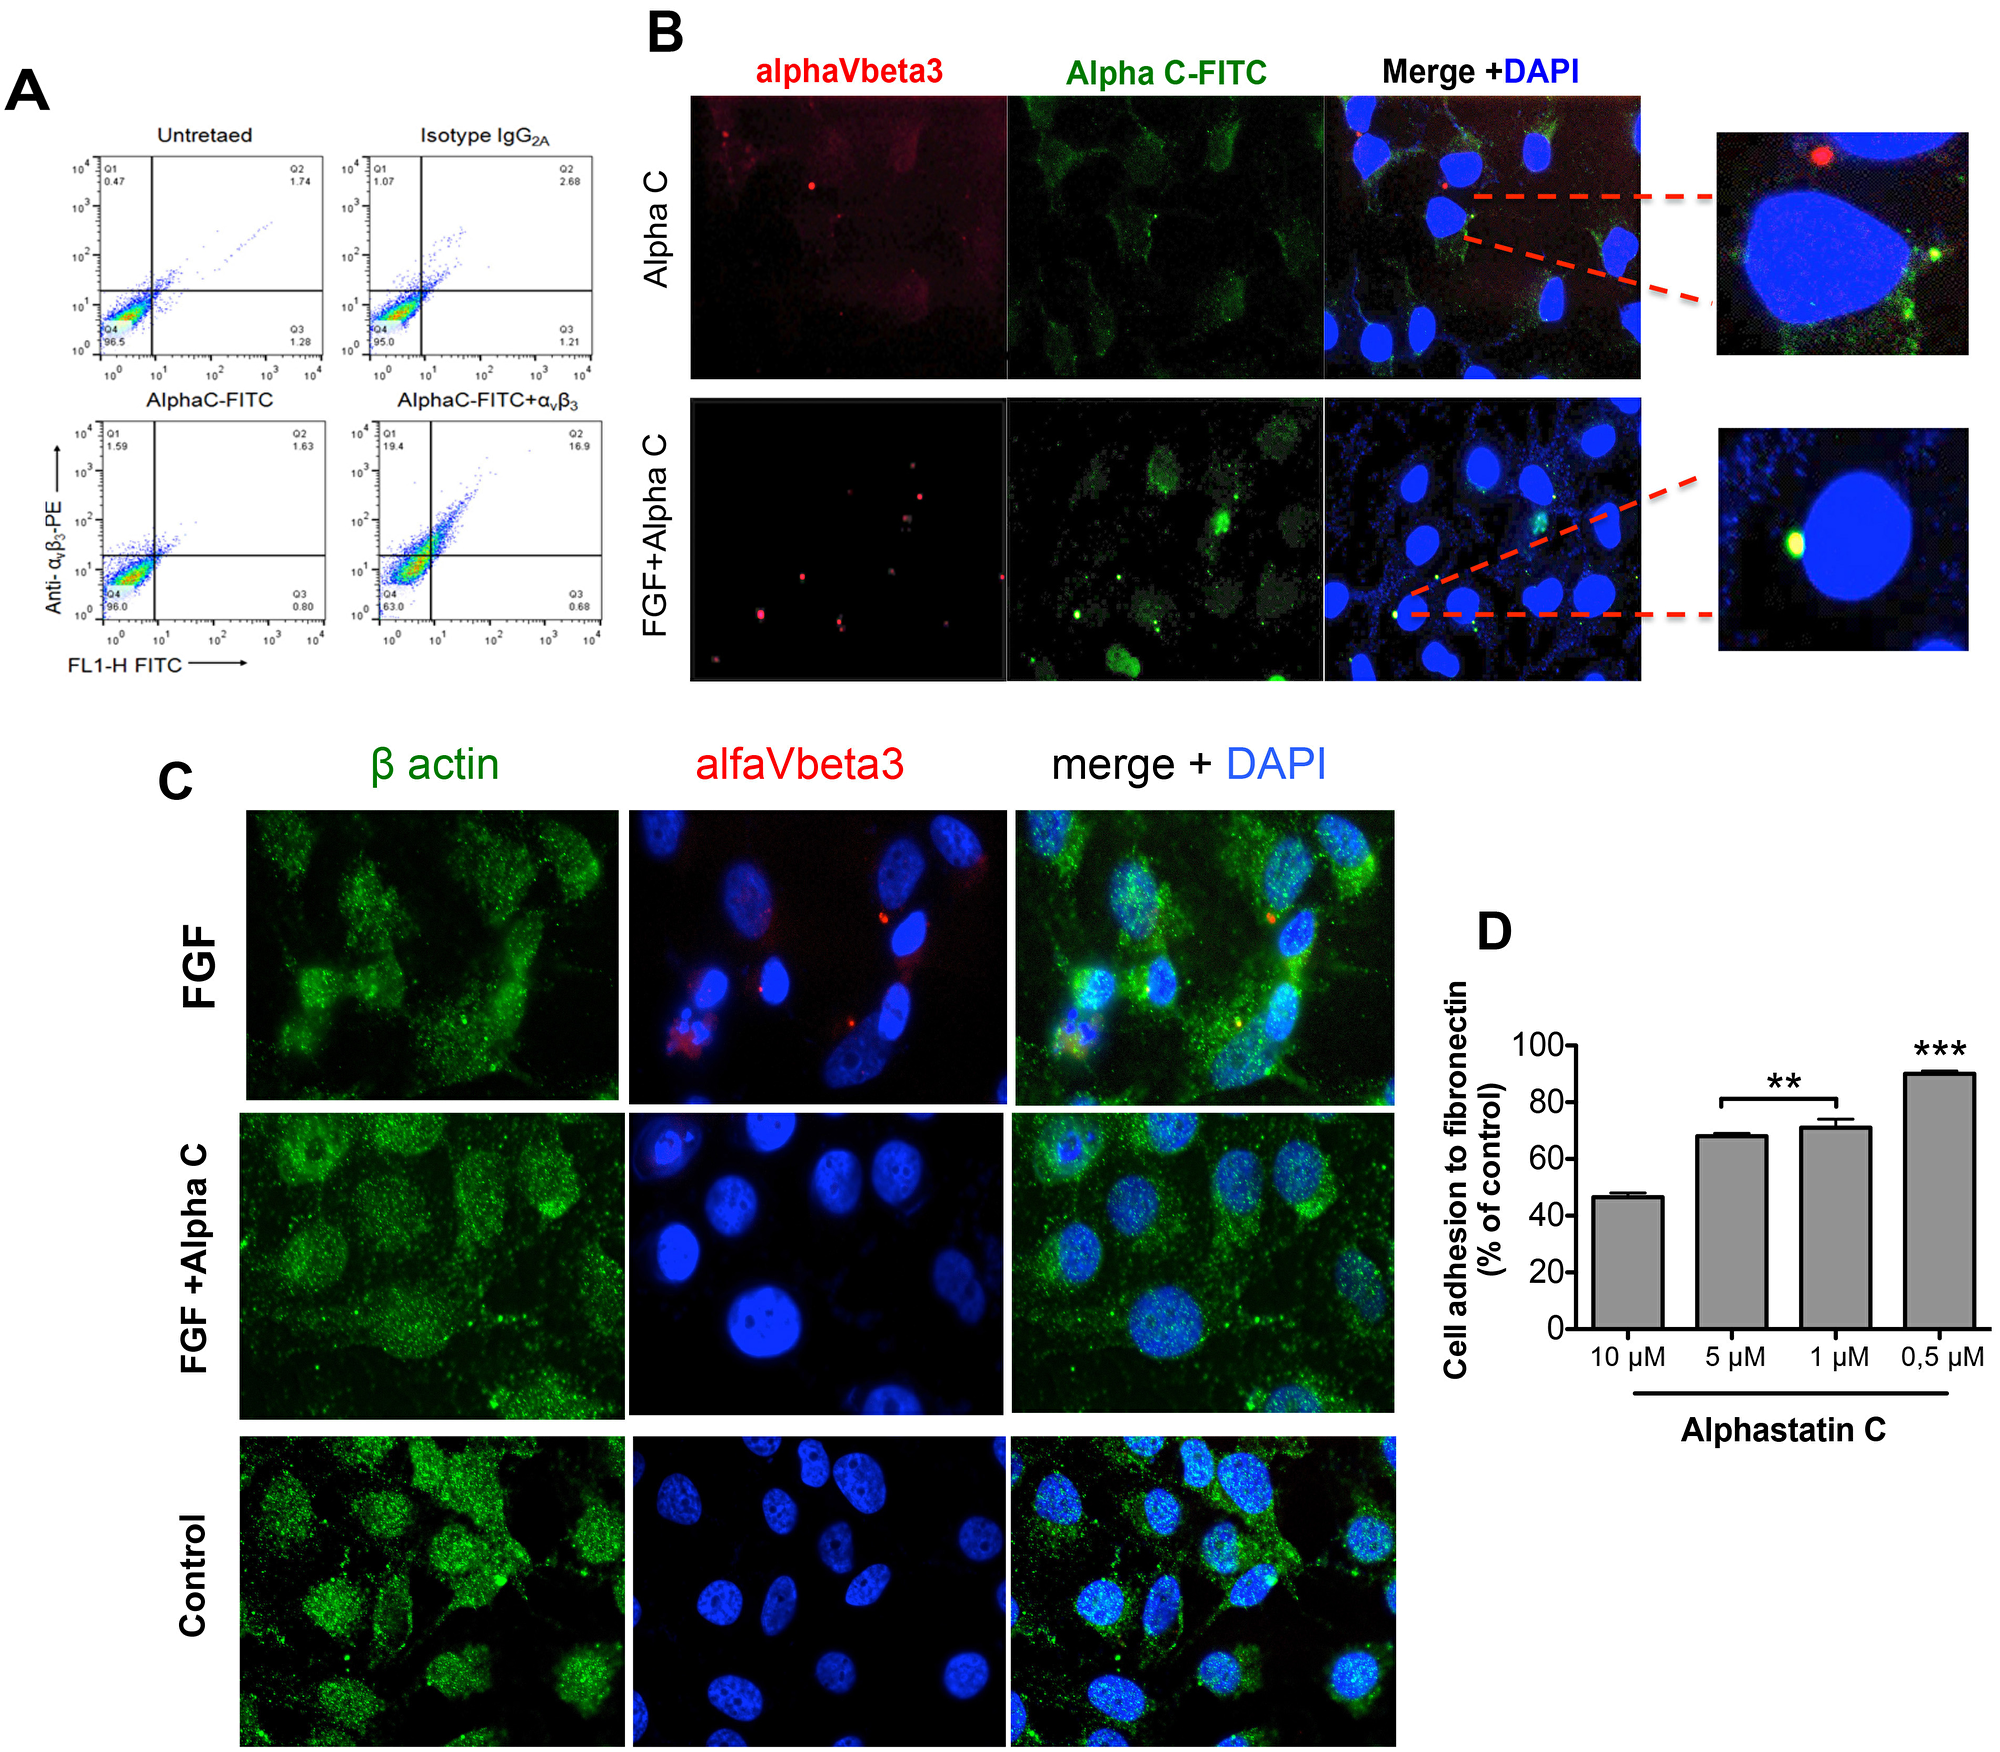 Alphastatin-C uncouples FGF-induced integrin V3 clustering and co-localizes with this integrin in the presence of bFGF.